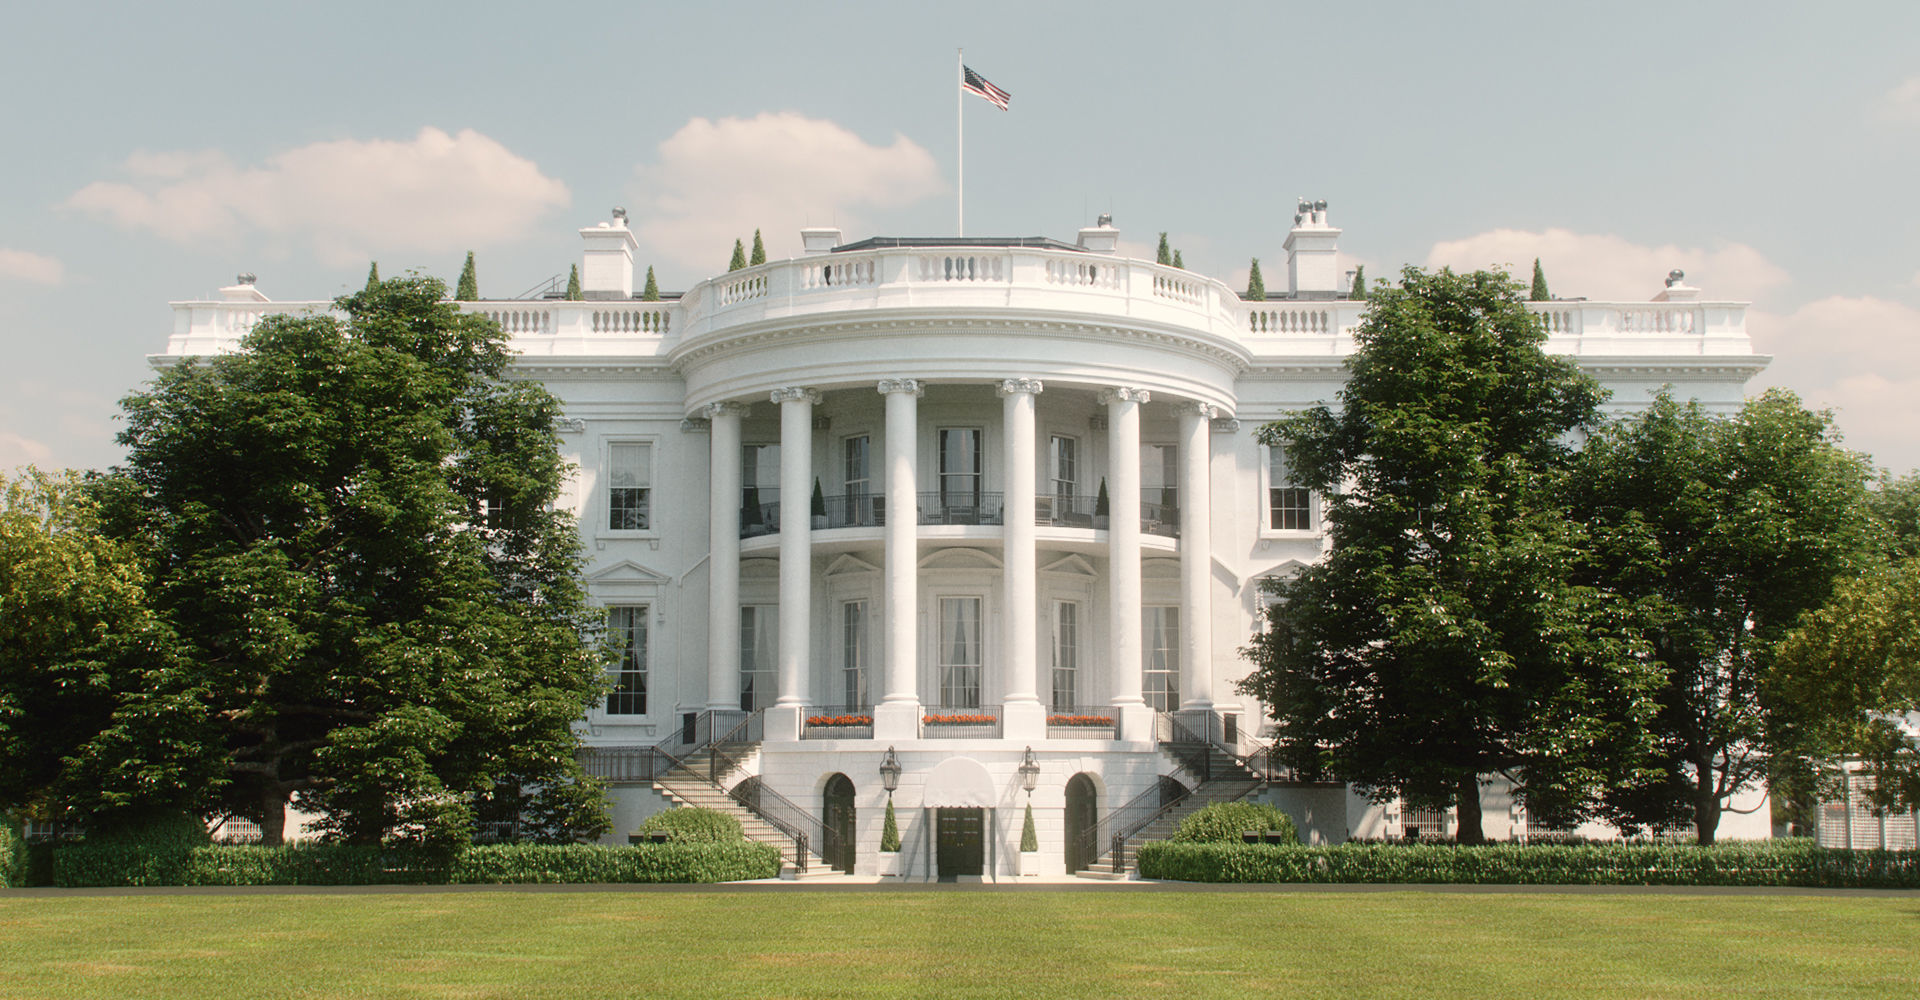 The White House Ultimate Edition